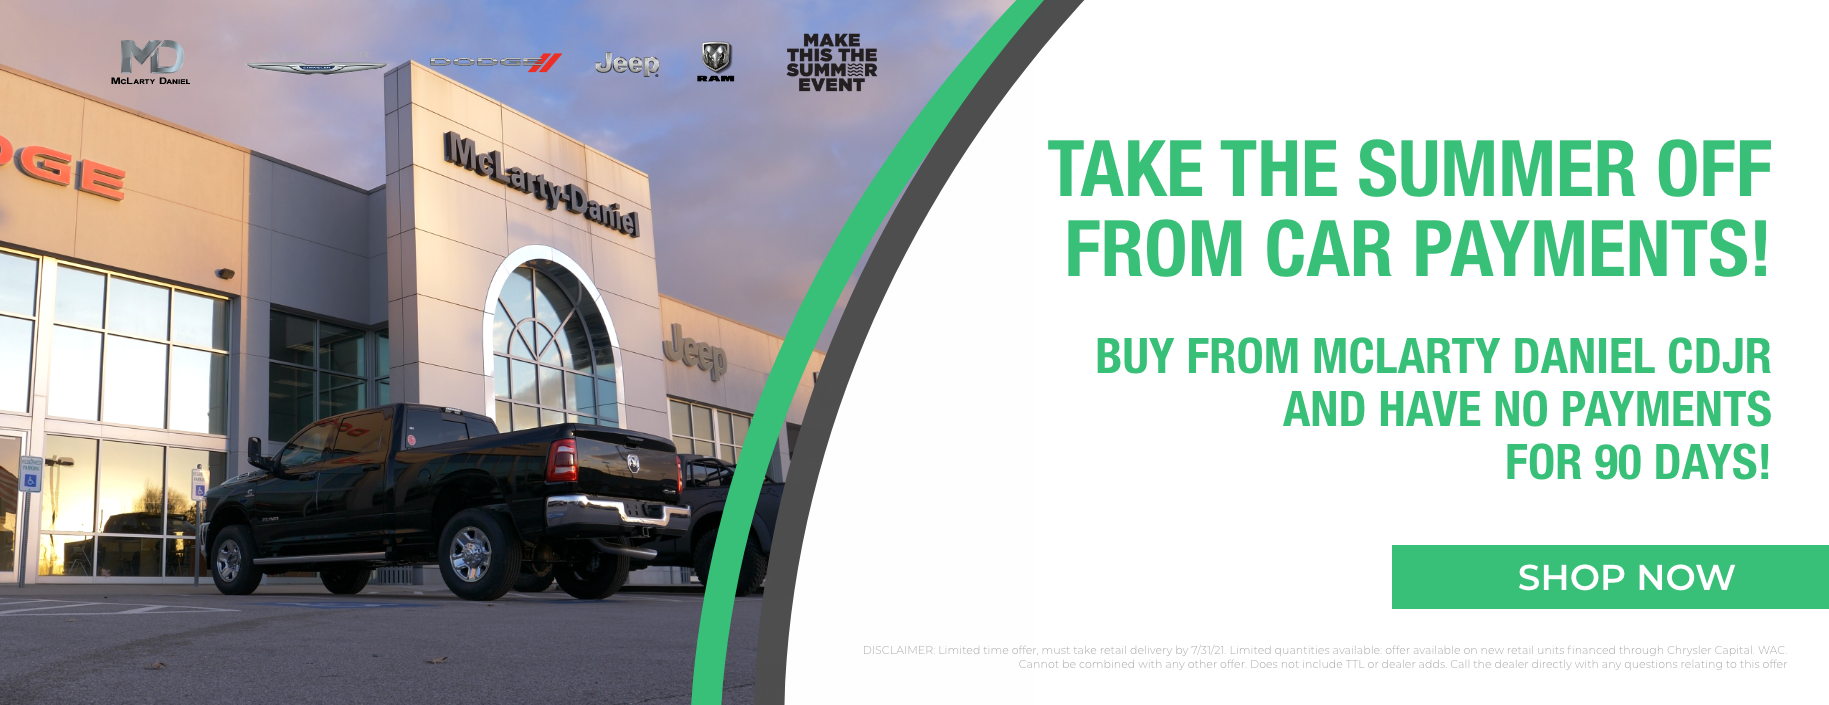 TAKE THE SUMMER OFF FROM CAR PAYMENTS - BUY FROM MCLARTY DANIEL CDJR AND HAVE NO PAYMENTS FOR 90 DAYS!